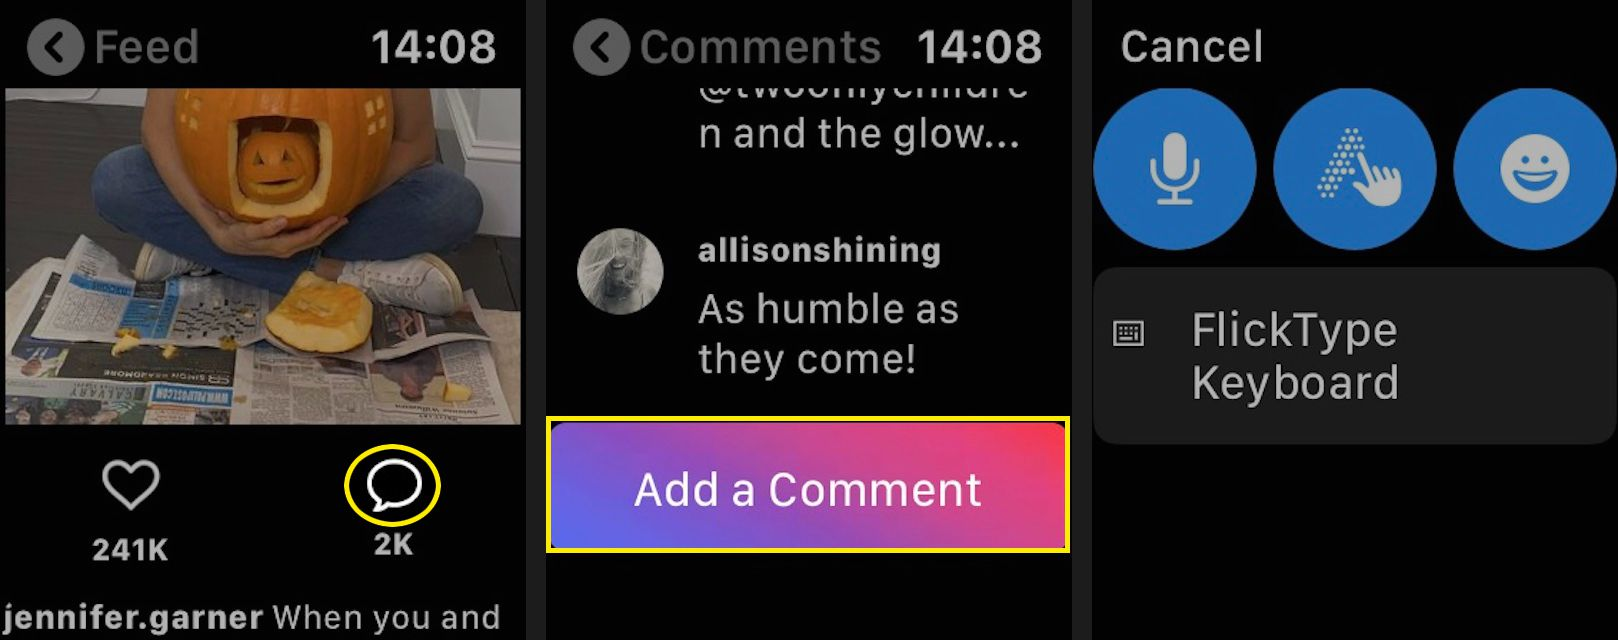 To make a comment, tap the speech bubble, scroll down, and tap Add a Comment. You'll be taken to a screen with your comment options.